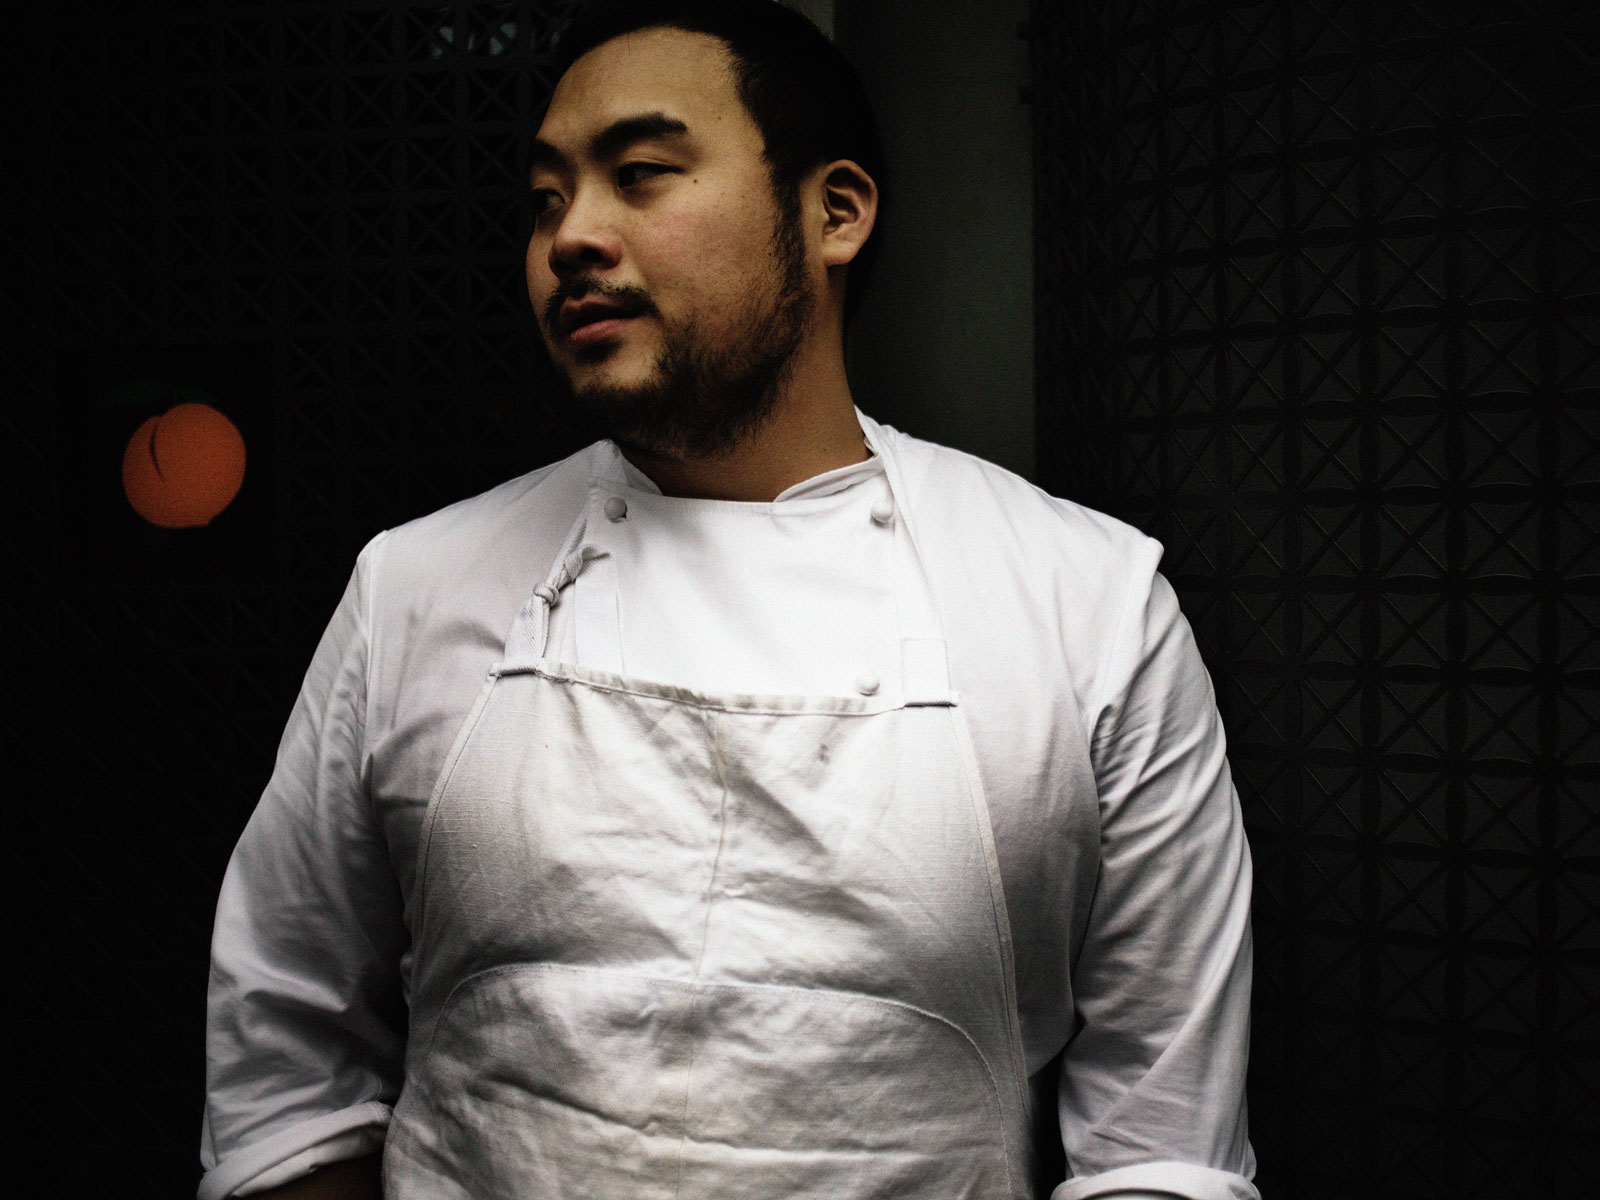 3 Takeaways from David Chang's thoughts on the #Metoo movement.